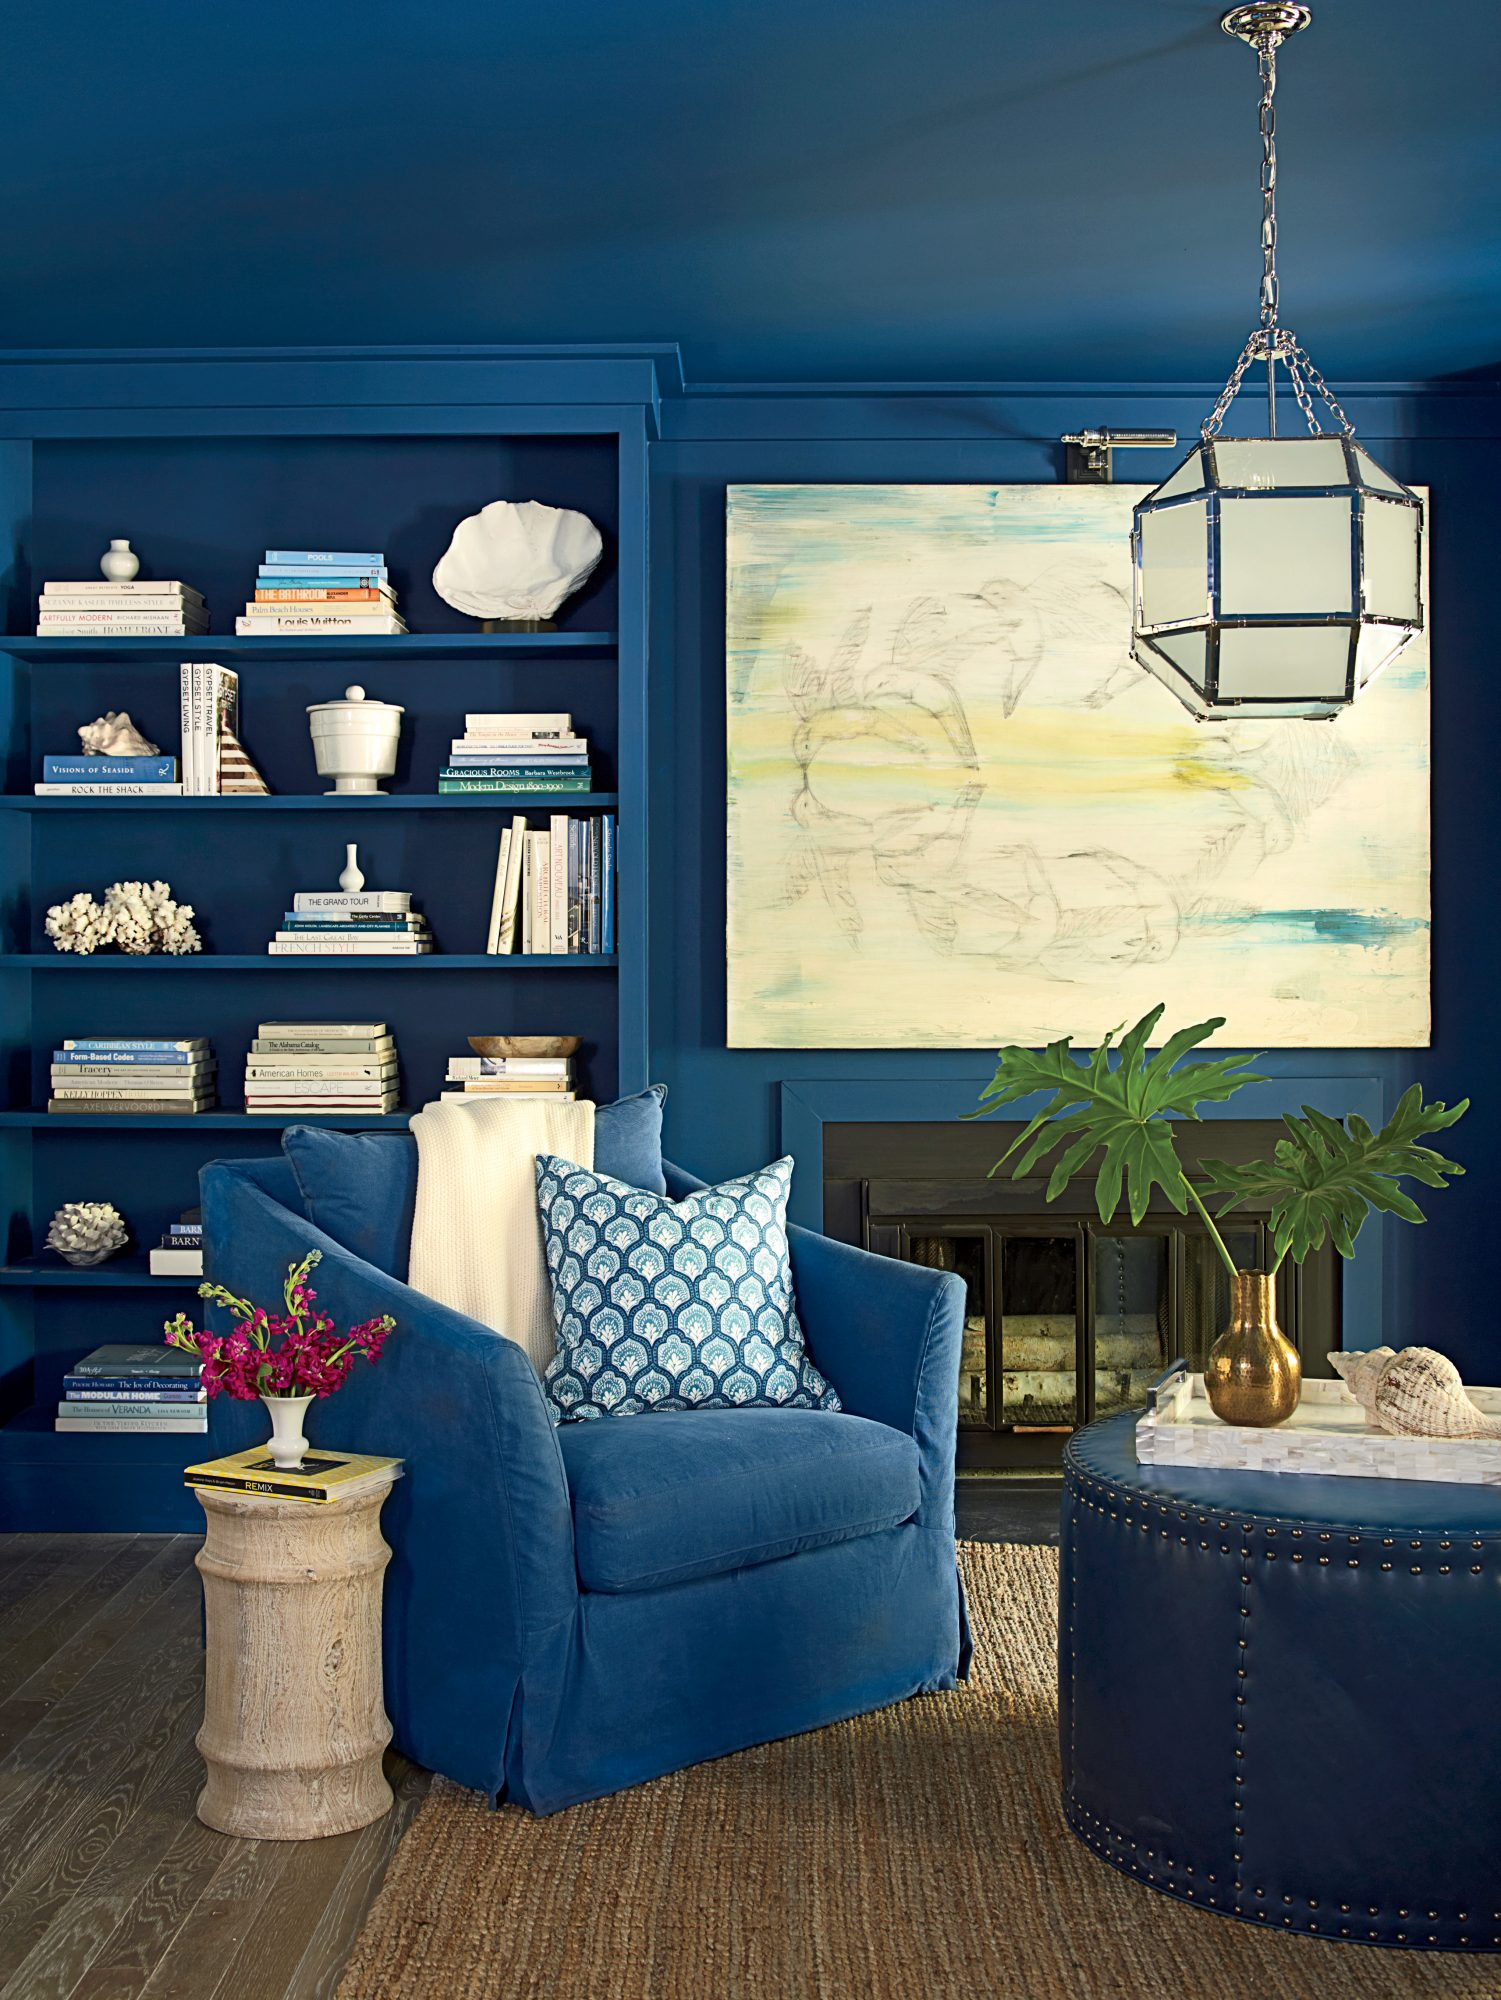 Get the Blues: Slate Teal by Benjamin Moore                                       To make this Florida cottage's teeny family room live larger, designers Mark and Paige Schnell washed the entire den, from trim to ceiling, in a rich marine blue. White artwork and accessories, plus a polished nickel pendant, brighten the deep sapphire hue and give the small space high-impact dimension.